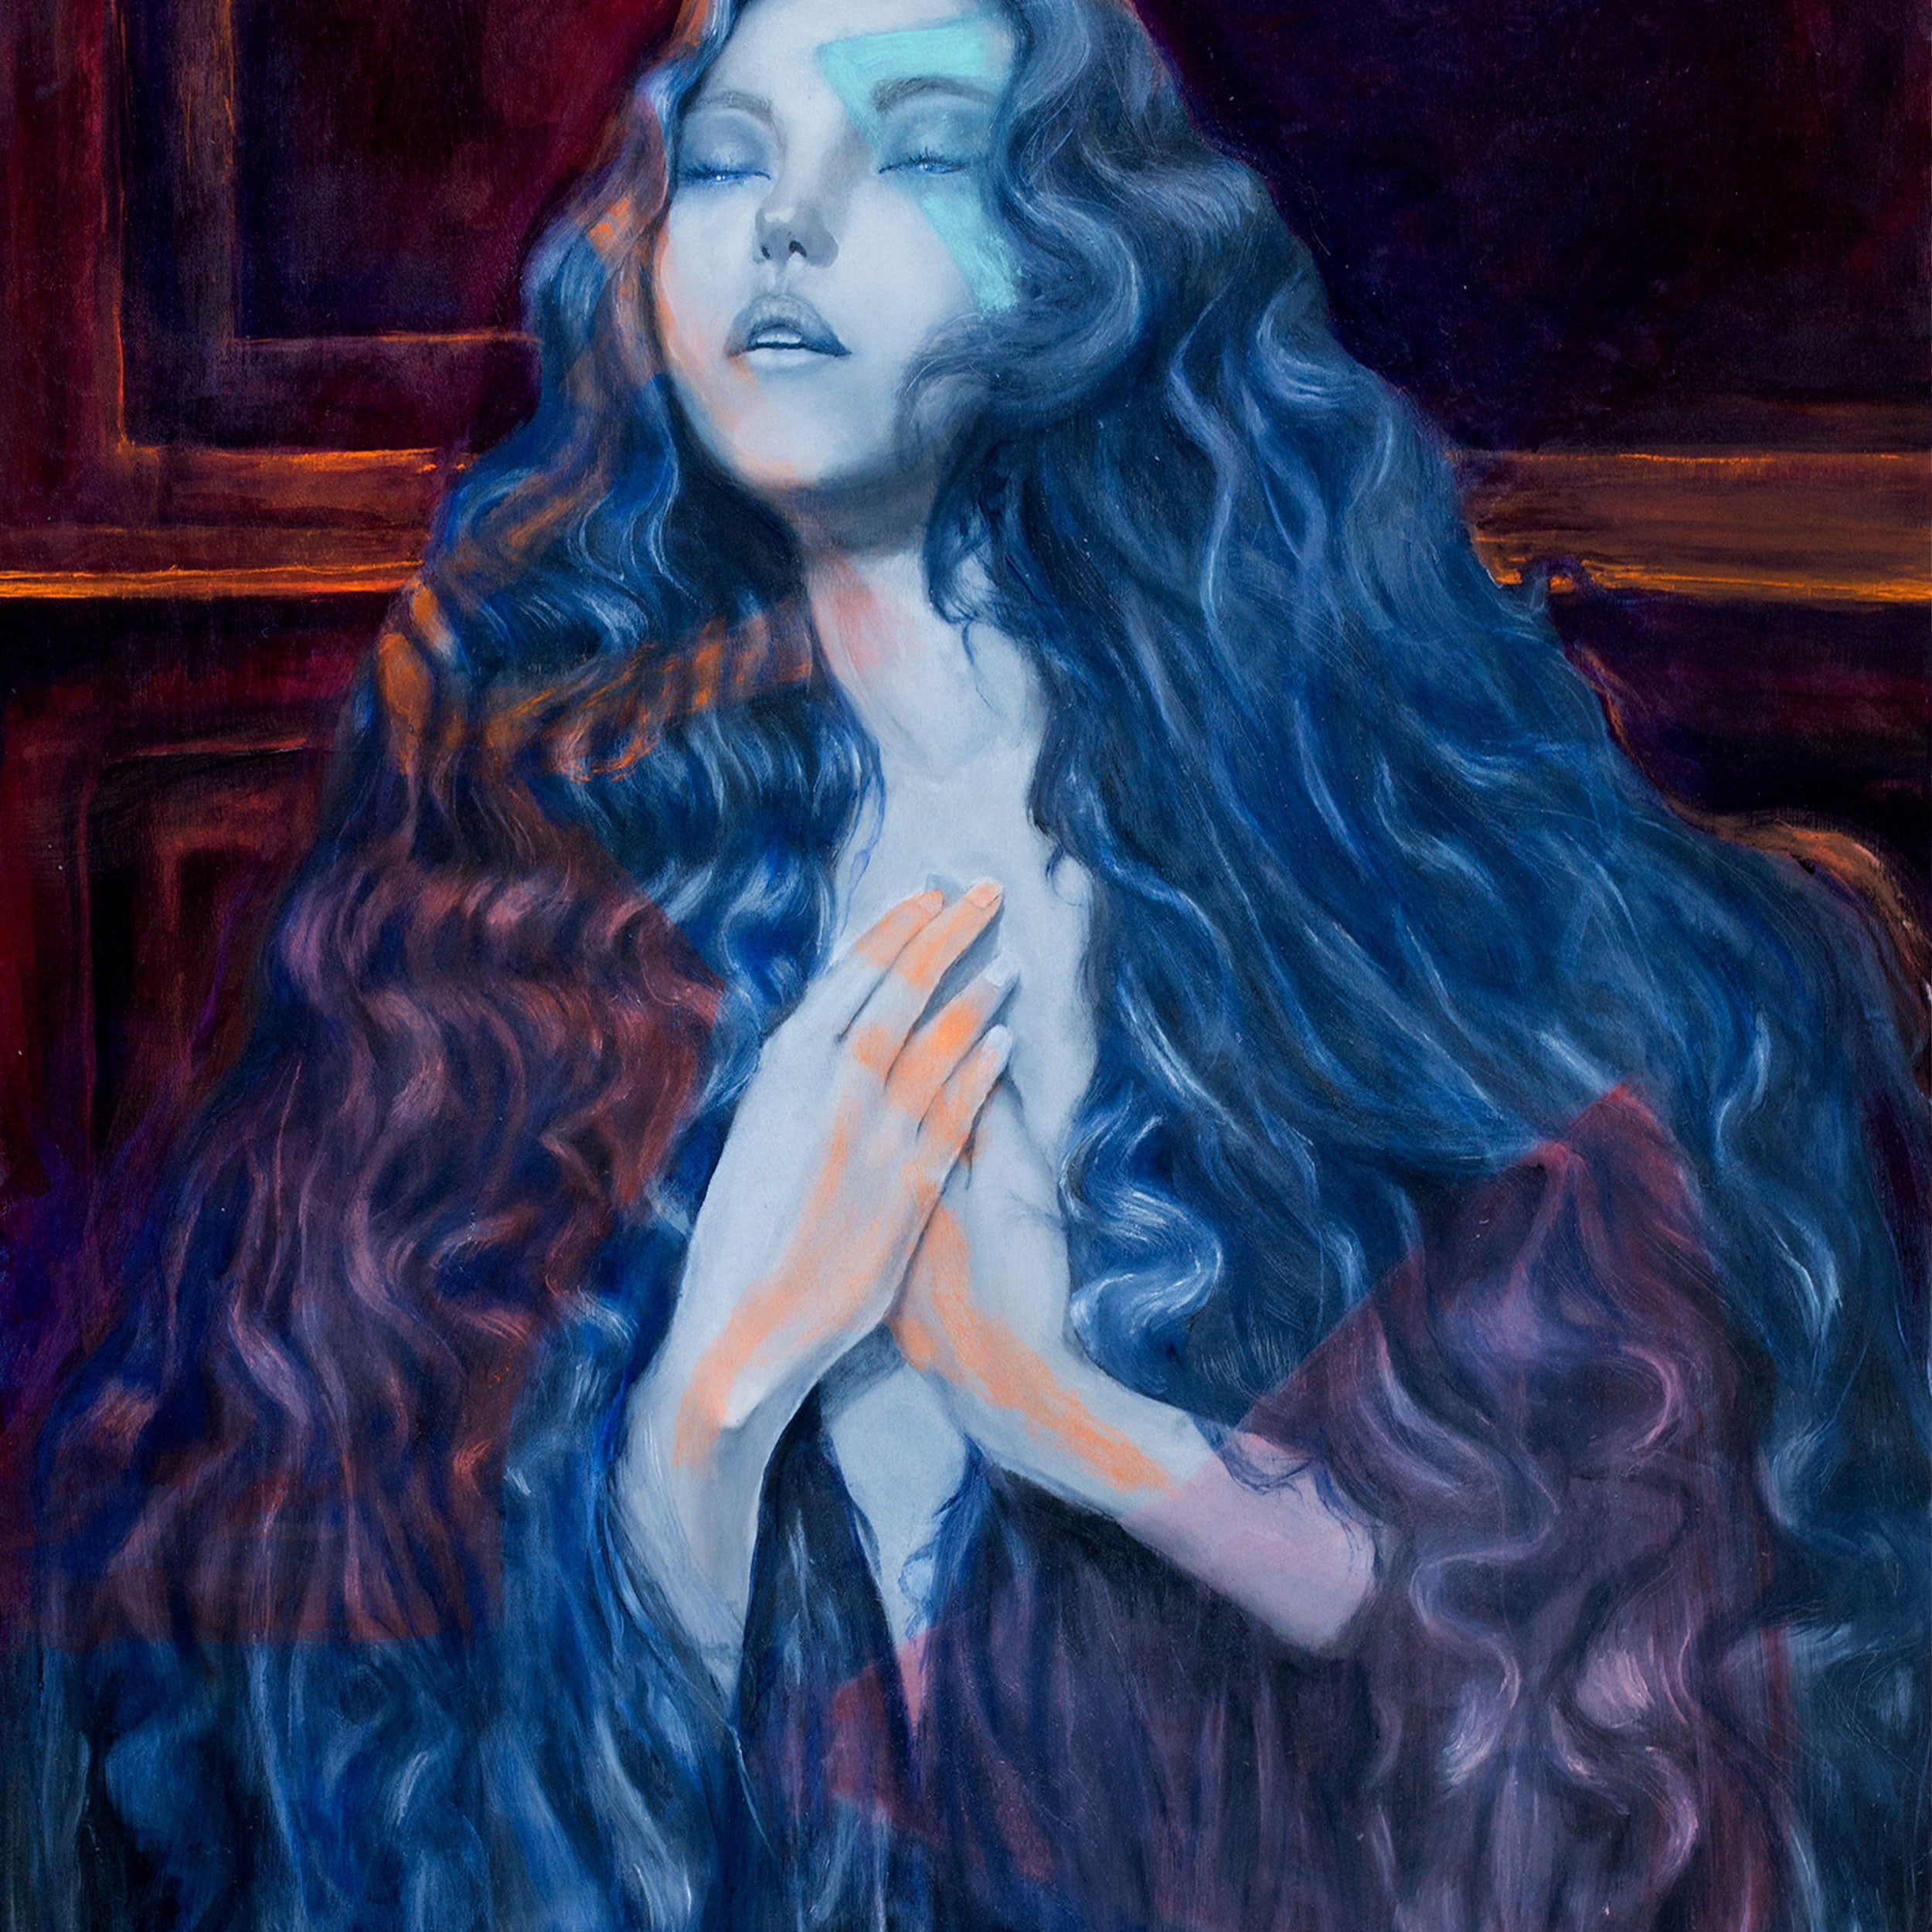 Liquid Dreams (The Millennial Mona Lisa) ARCHIVAL GICLÉE PRINT